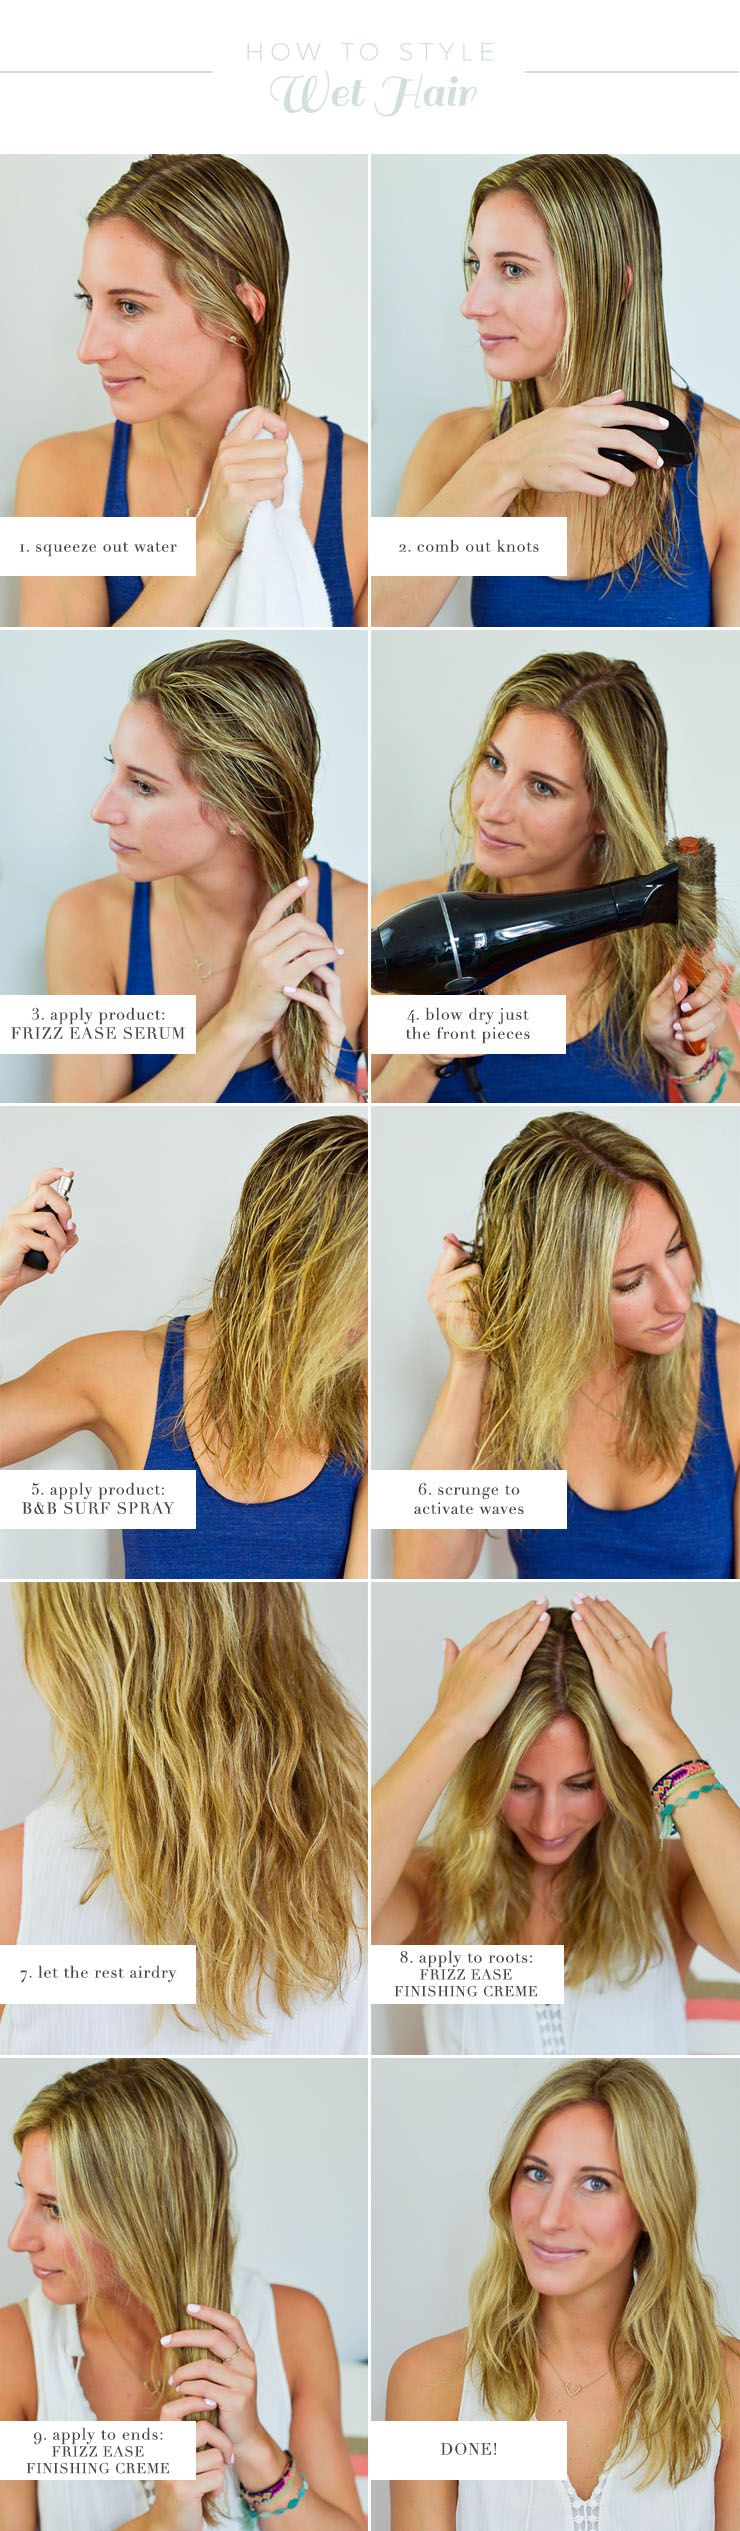 How To Style Wet Hair Air Dry Hair Hair Hair Styles